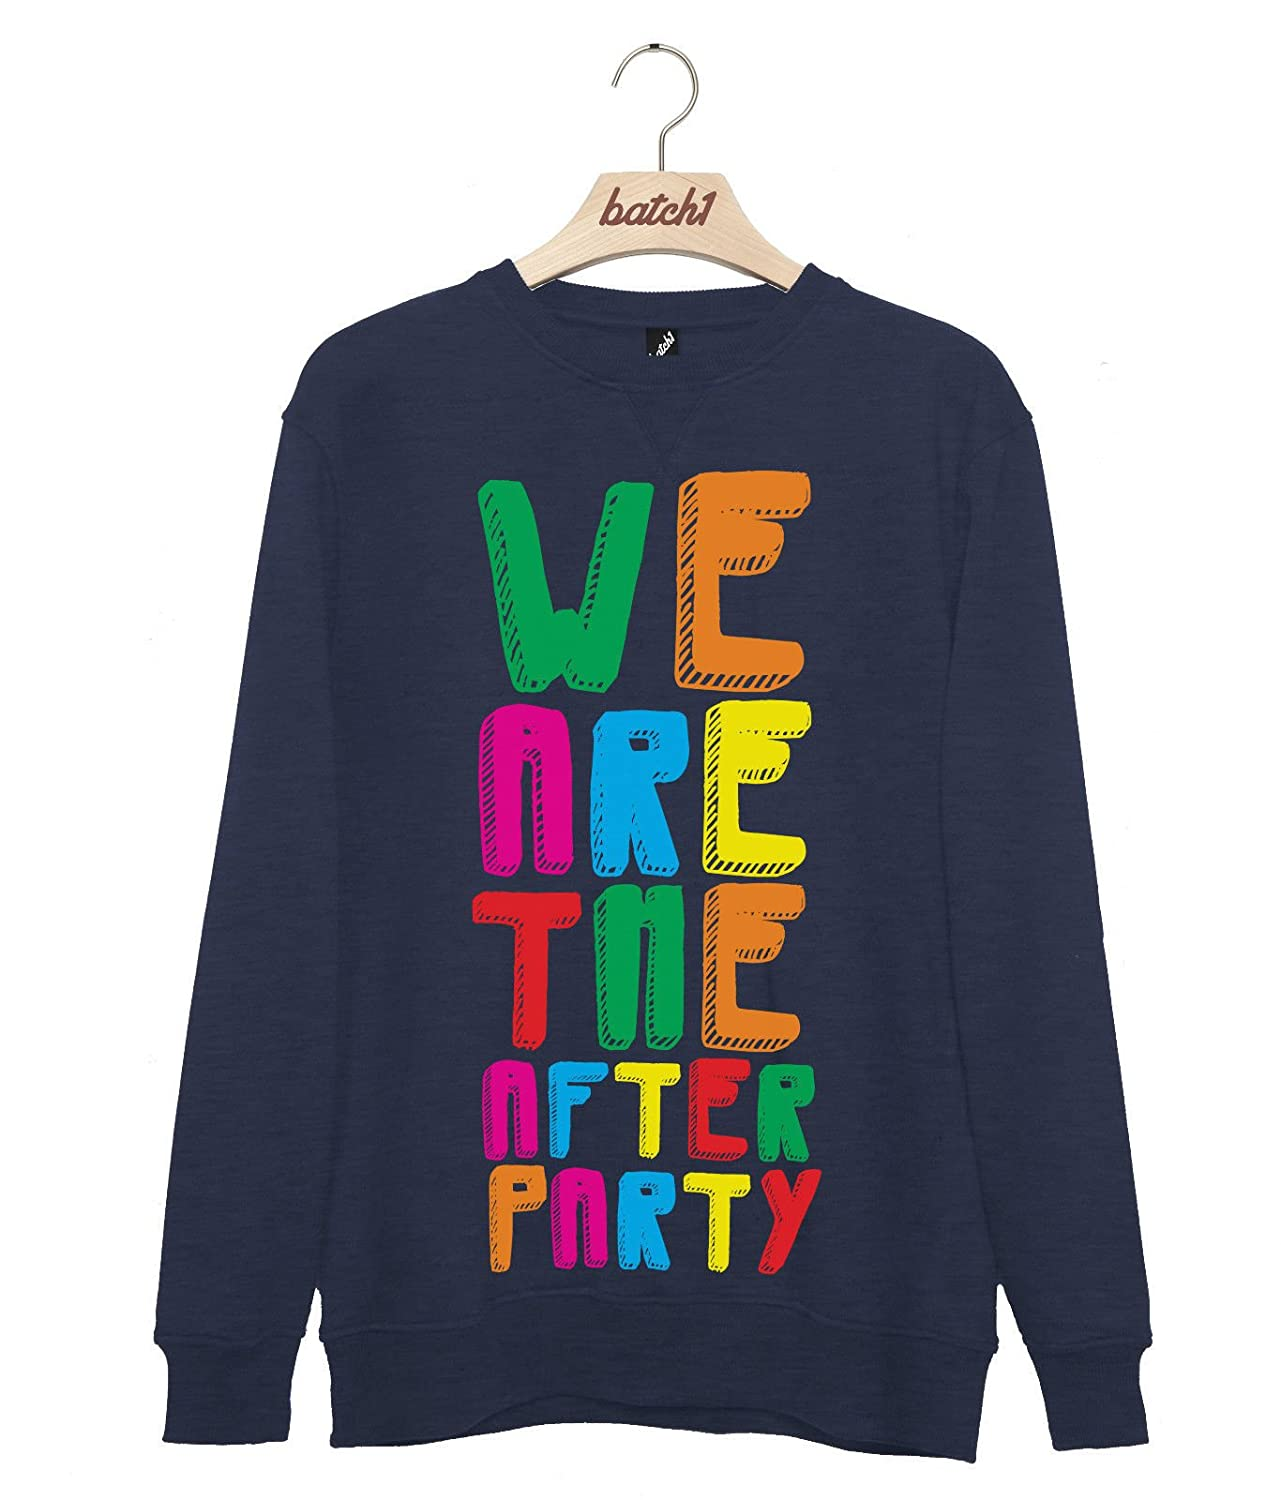 Batch1 We are The After Party Summer Music Festival Mens Gig Sweatshirt Jumper